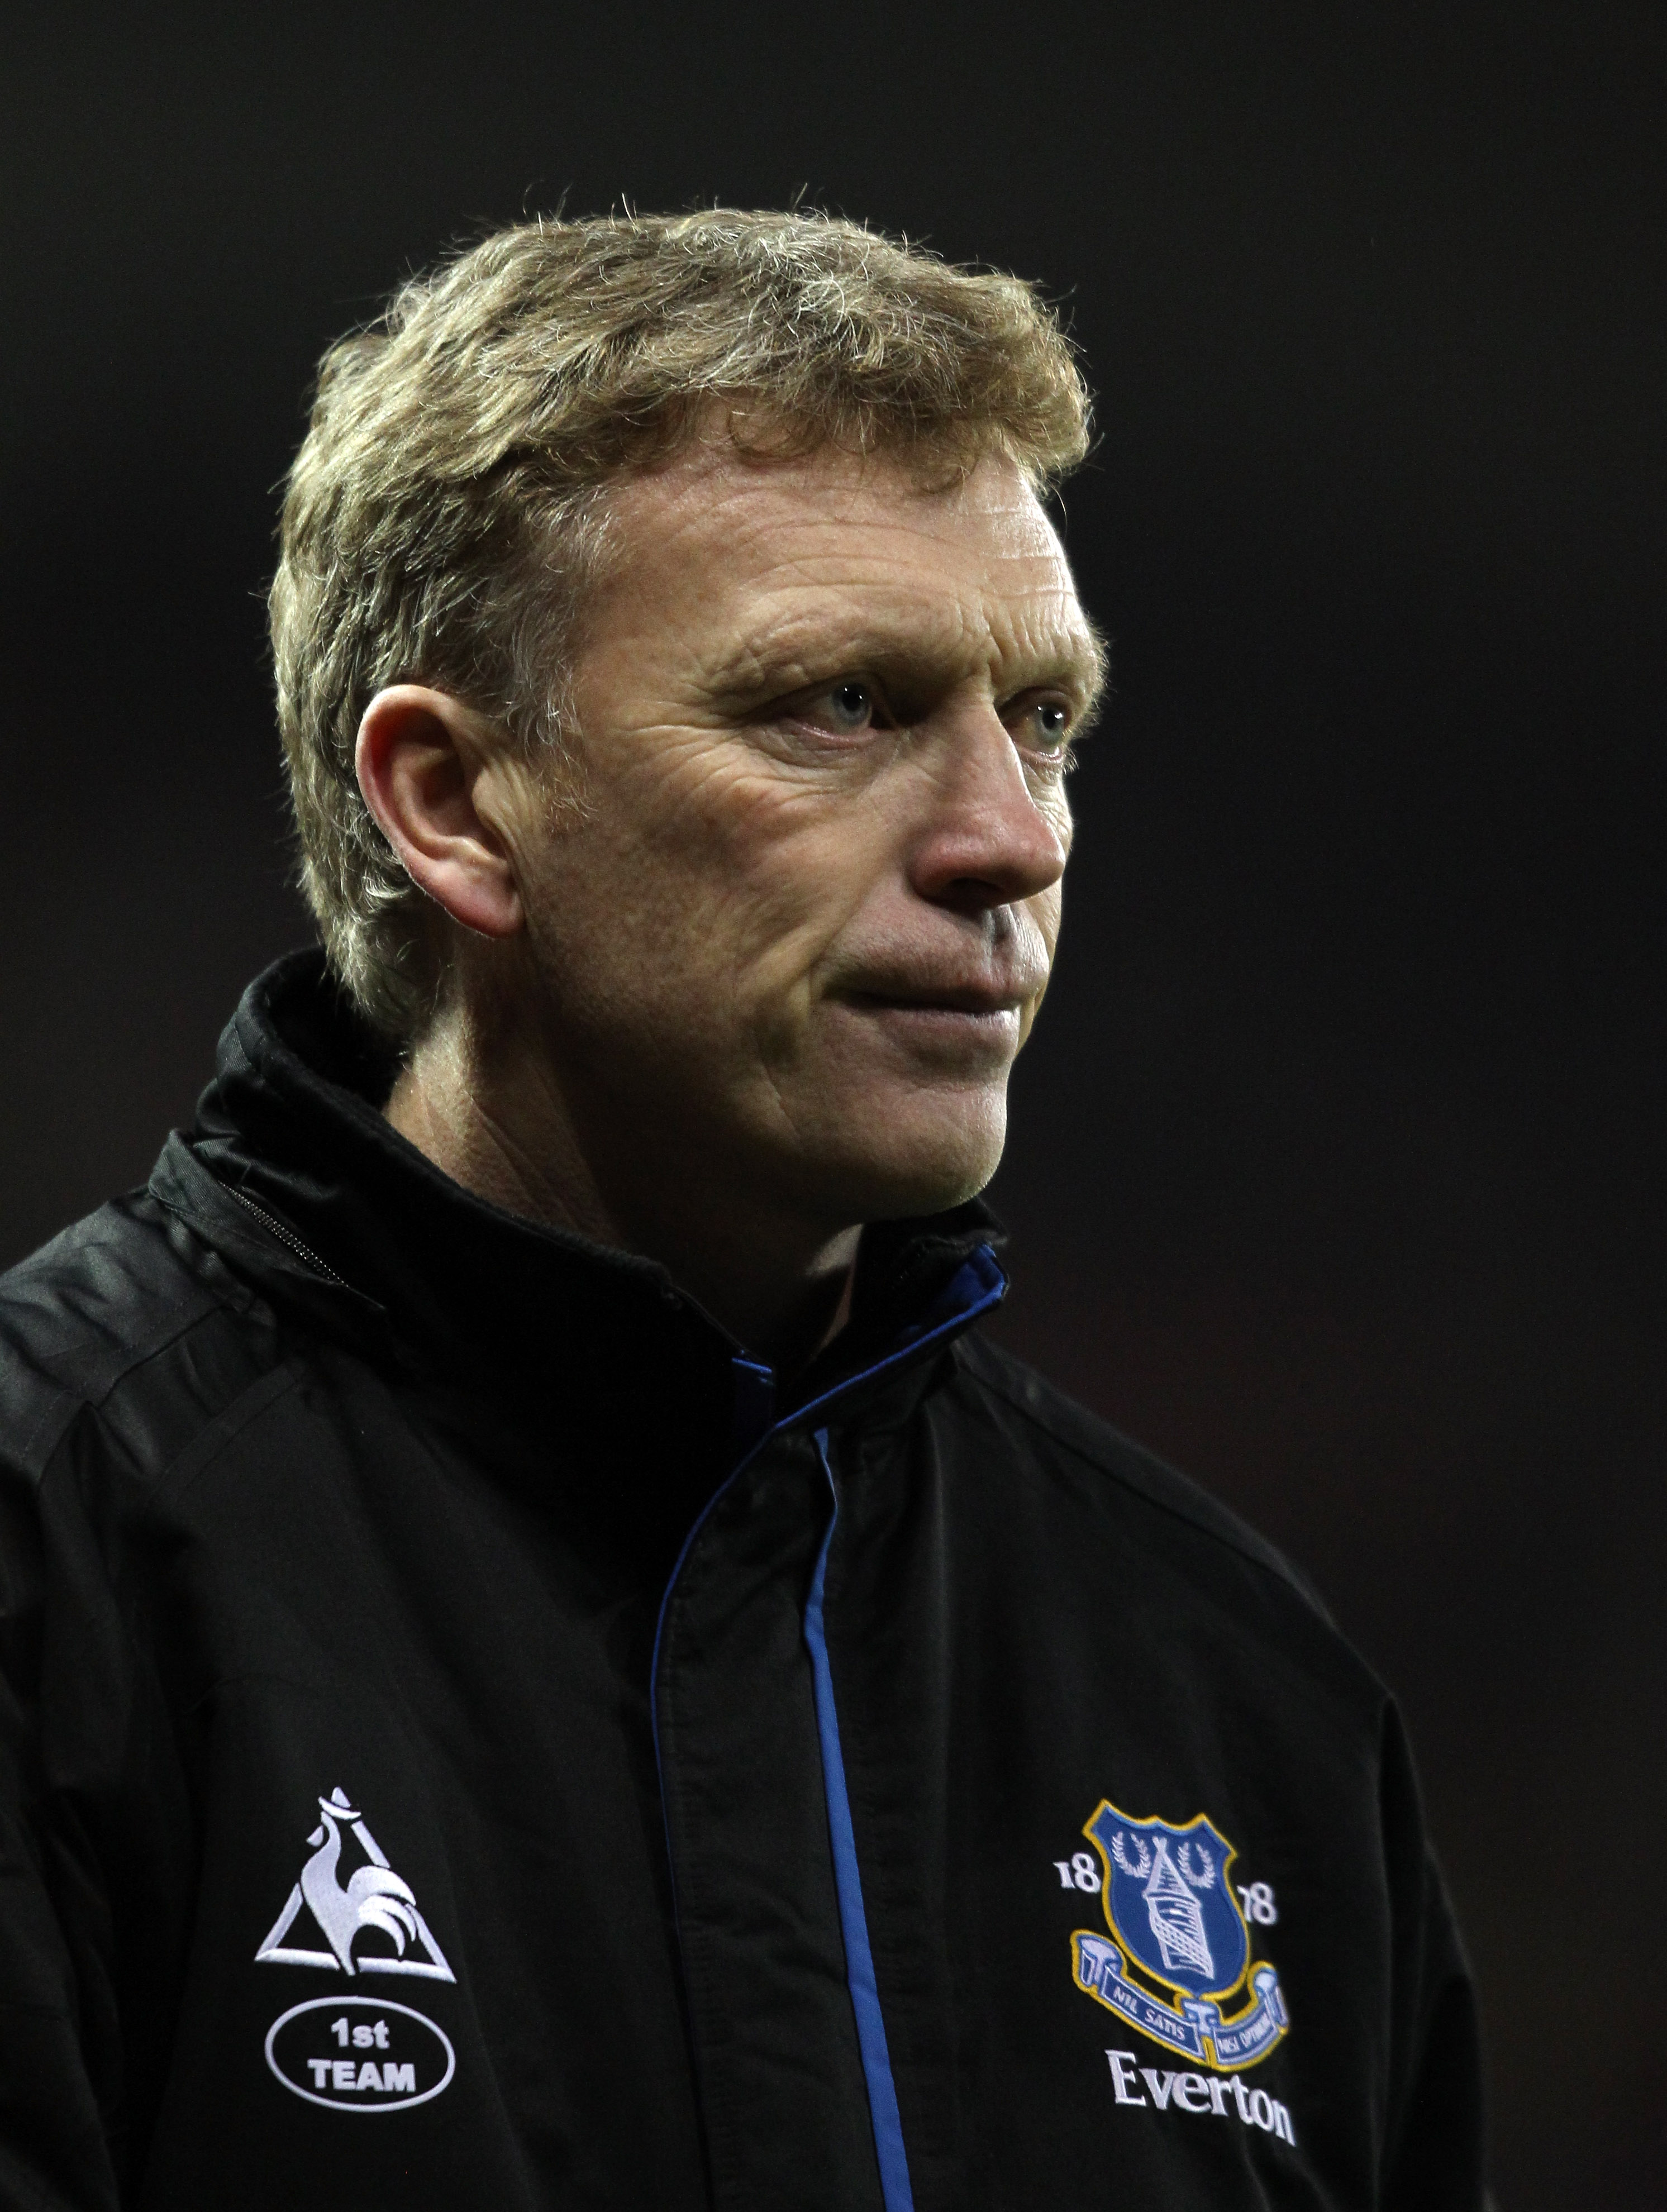 STOKE ON TRENT, ENGLAND - JANUARY 01:  David Moyes manager of Everton during the Barclays Premier League match between Stoke City and Everton at the Britannia Stadium on January 1, 2011 in Stoke on Trent, England.  (Photo by Ross Kinnaird/Getty Images)